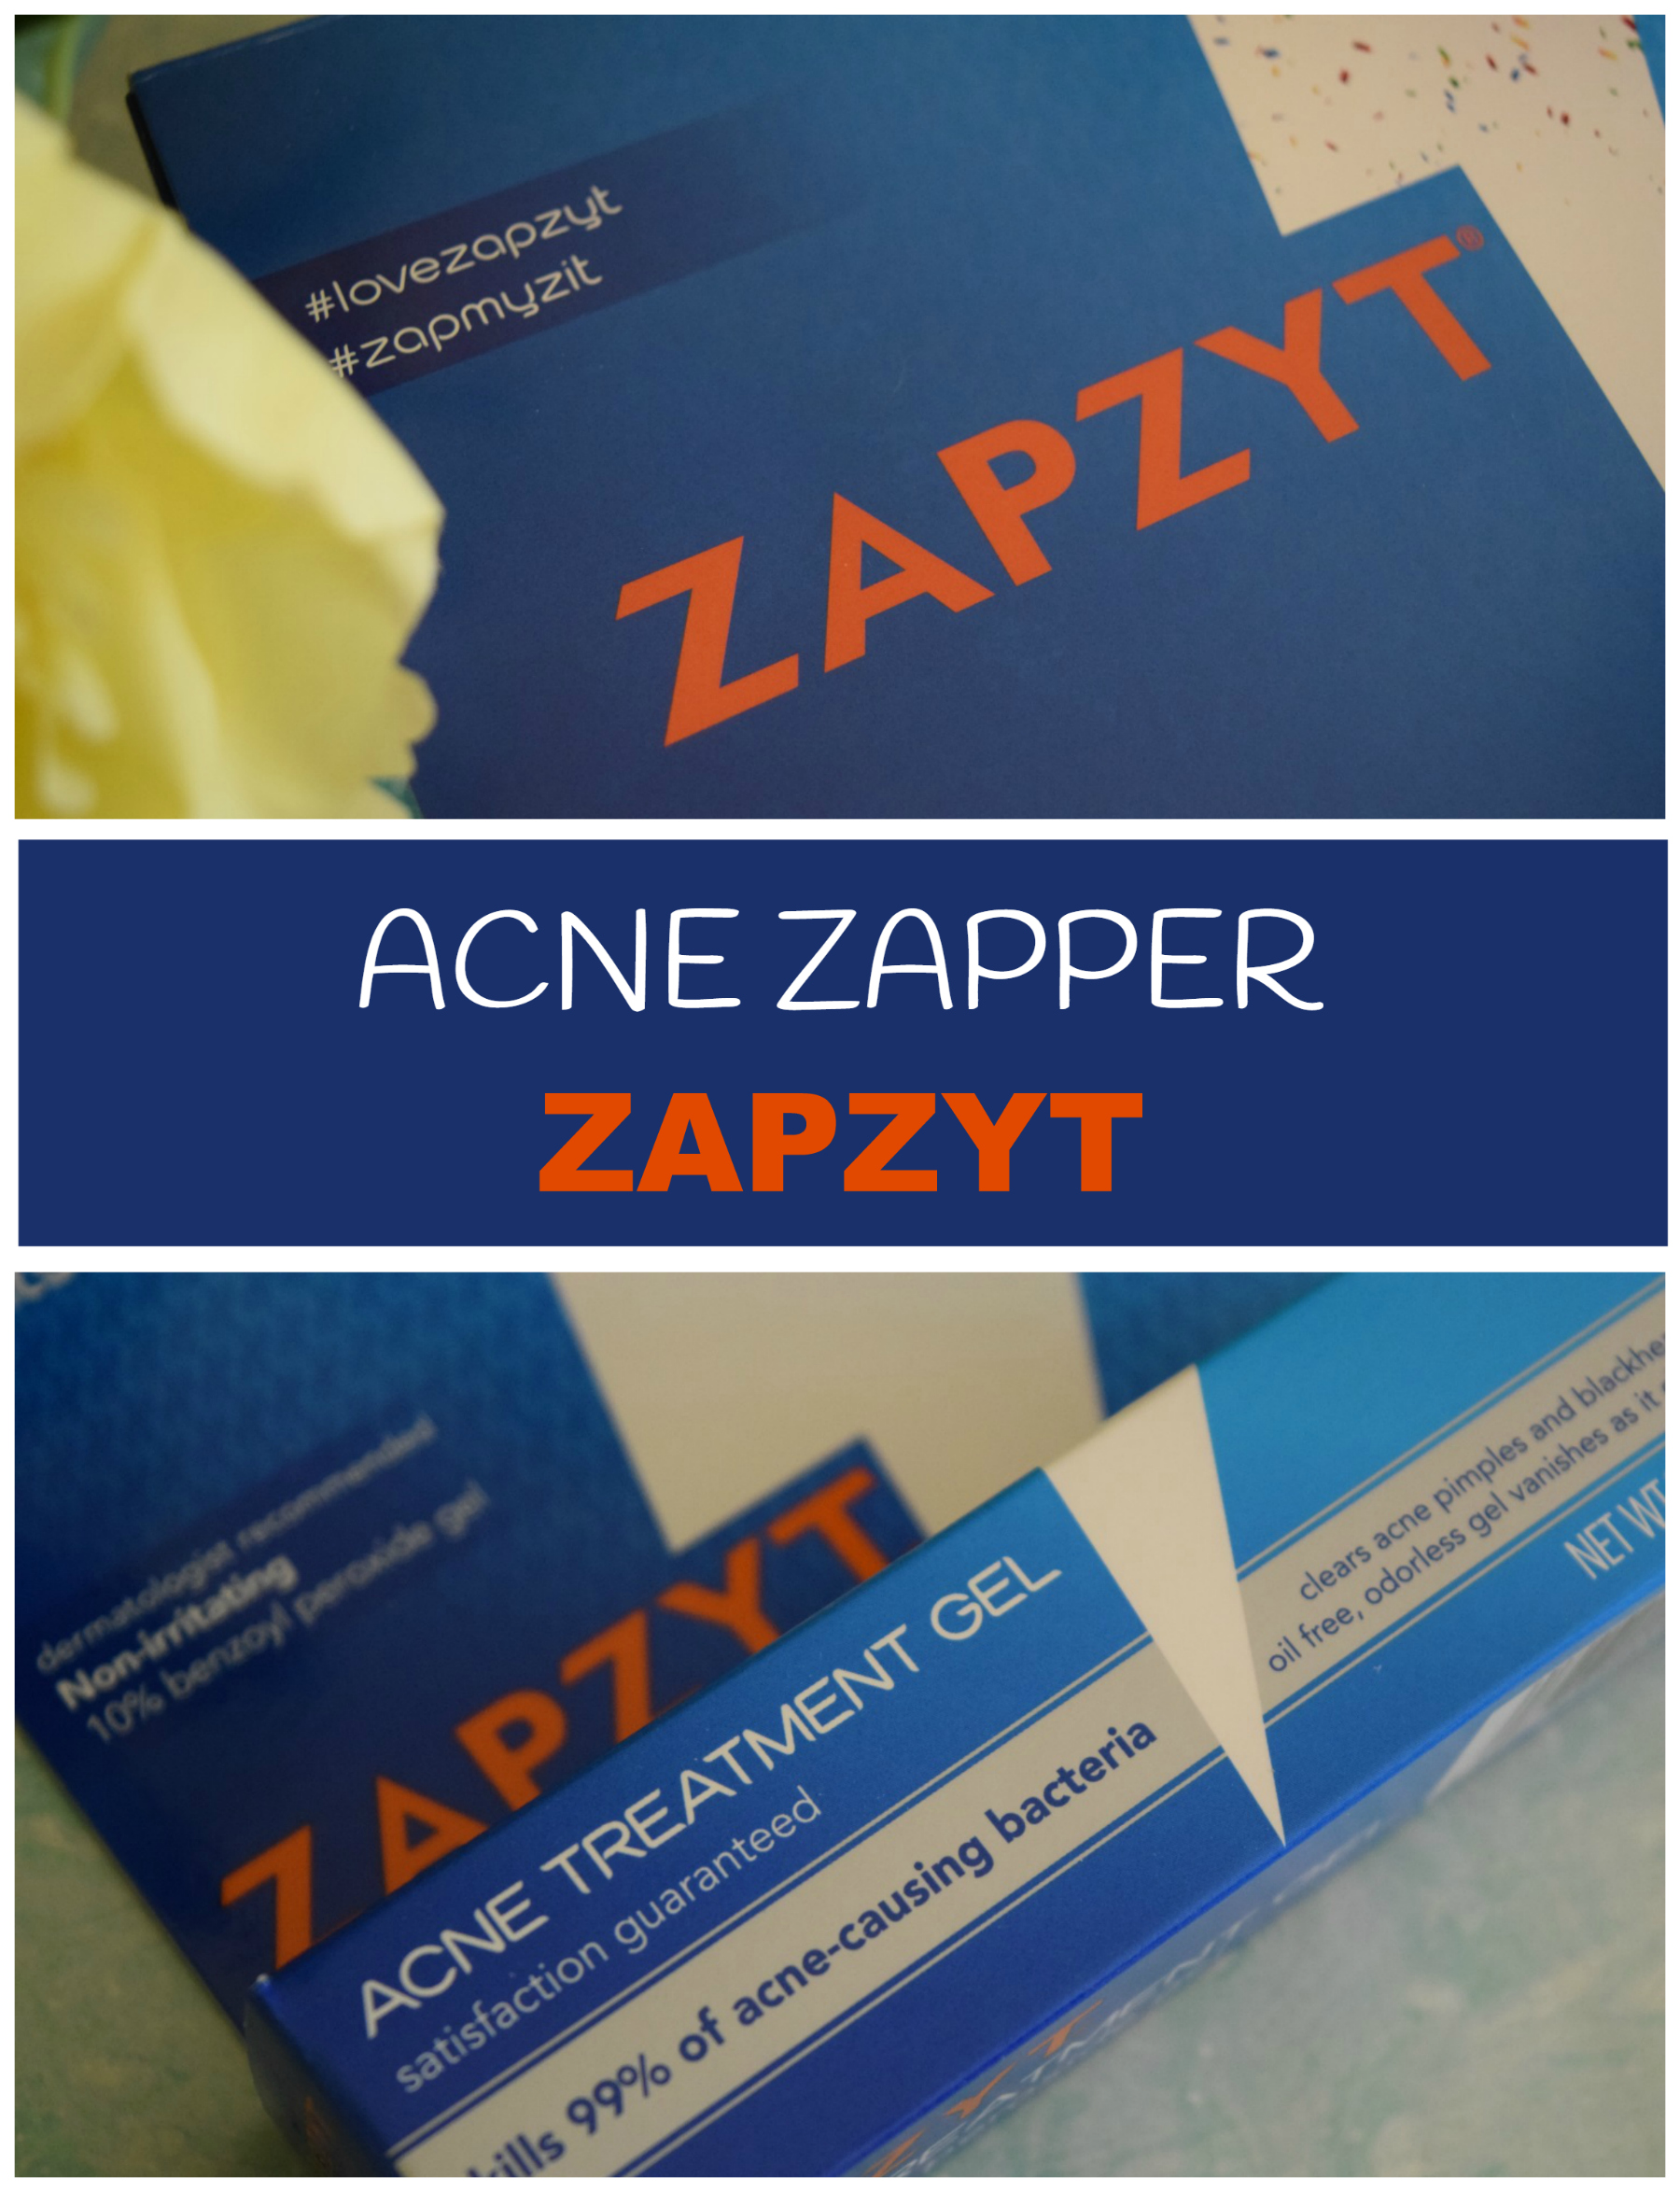 Clearing Up My Adult Acne With Acne Zapper Zapzyt Beauty And